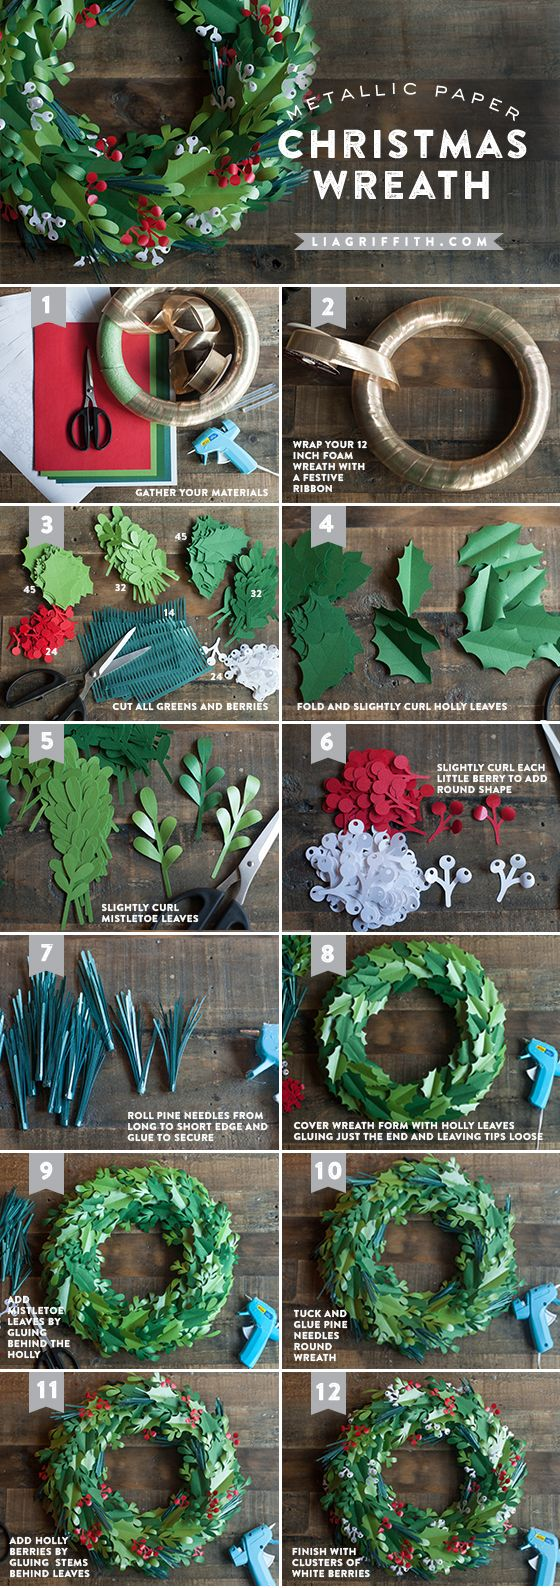 Christmas Wreath - How To Make A Wreath - Step By Step - Floral Wreath Tutorial - Woodgeek - Woodgeekstore